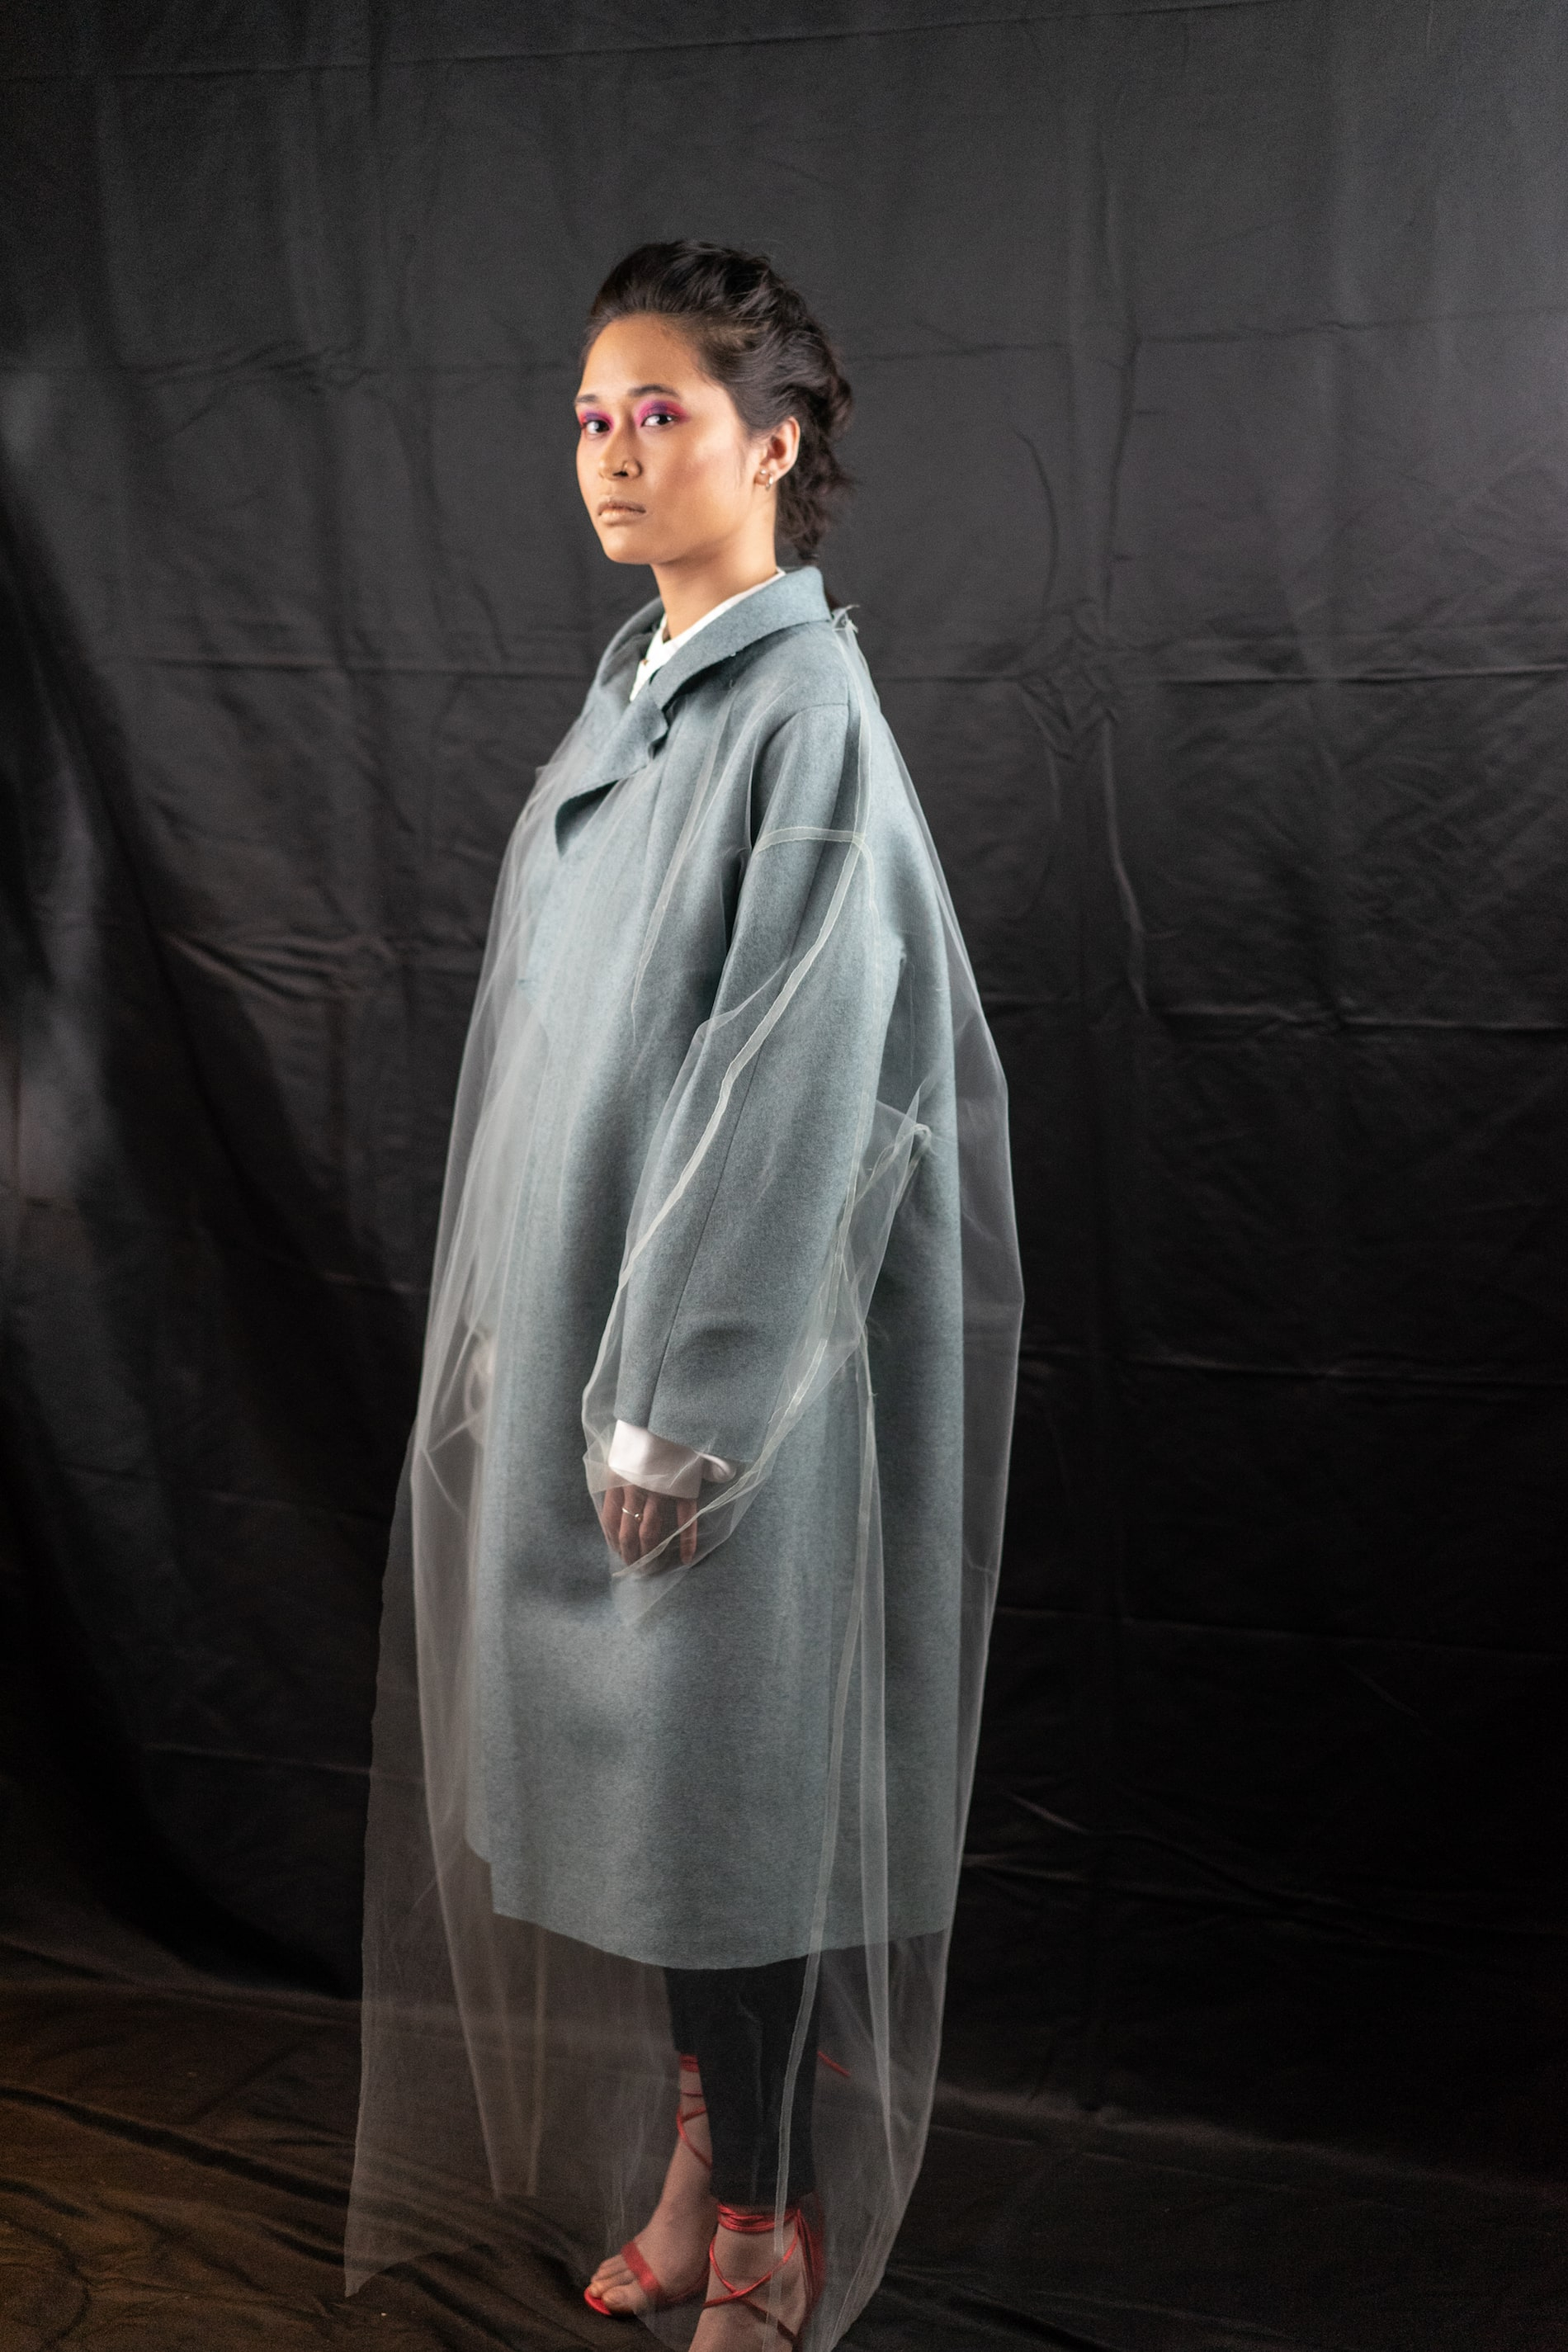 Model dressed in grey trench coast